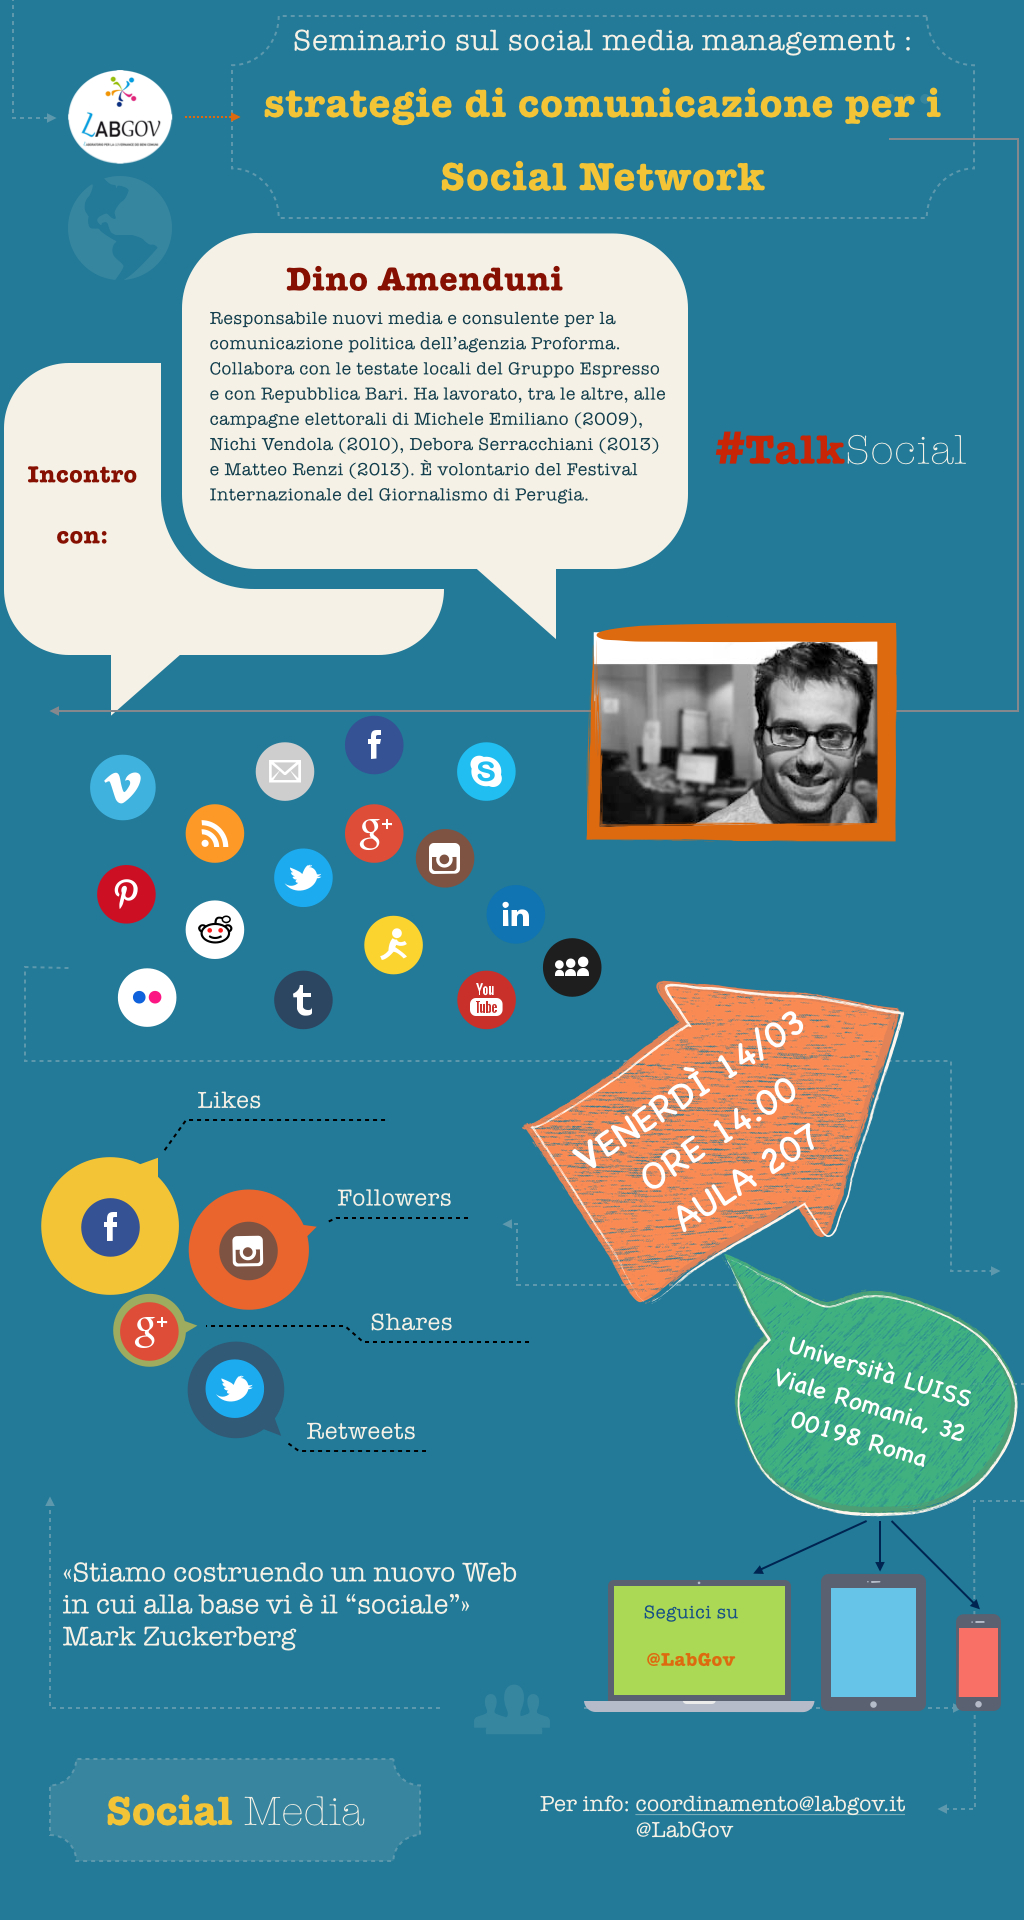 Meeting with Dino Amenduni – Seminar on Social Media Management